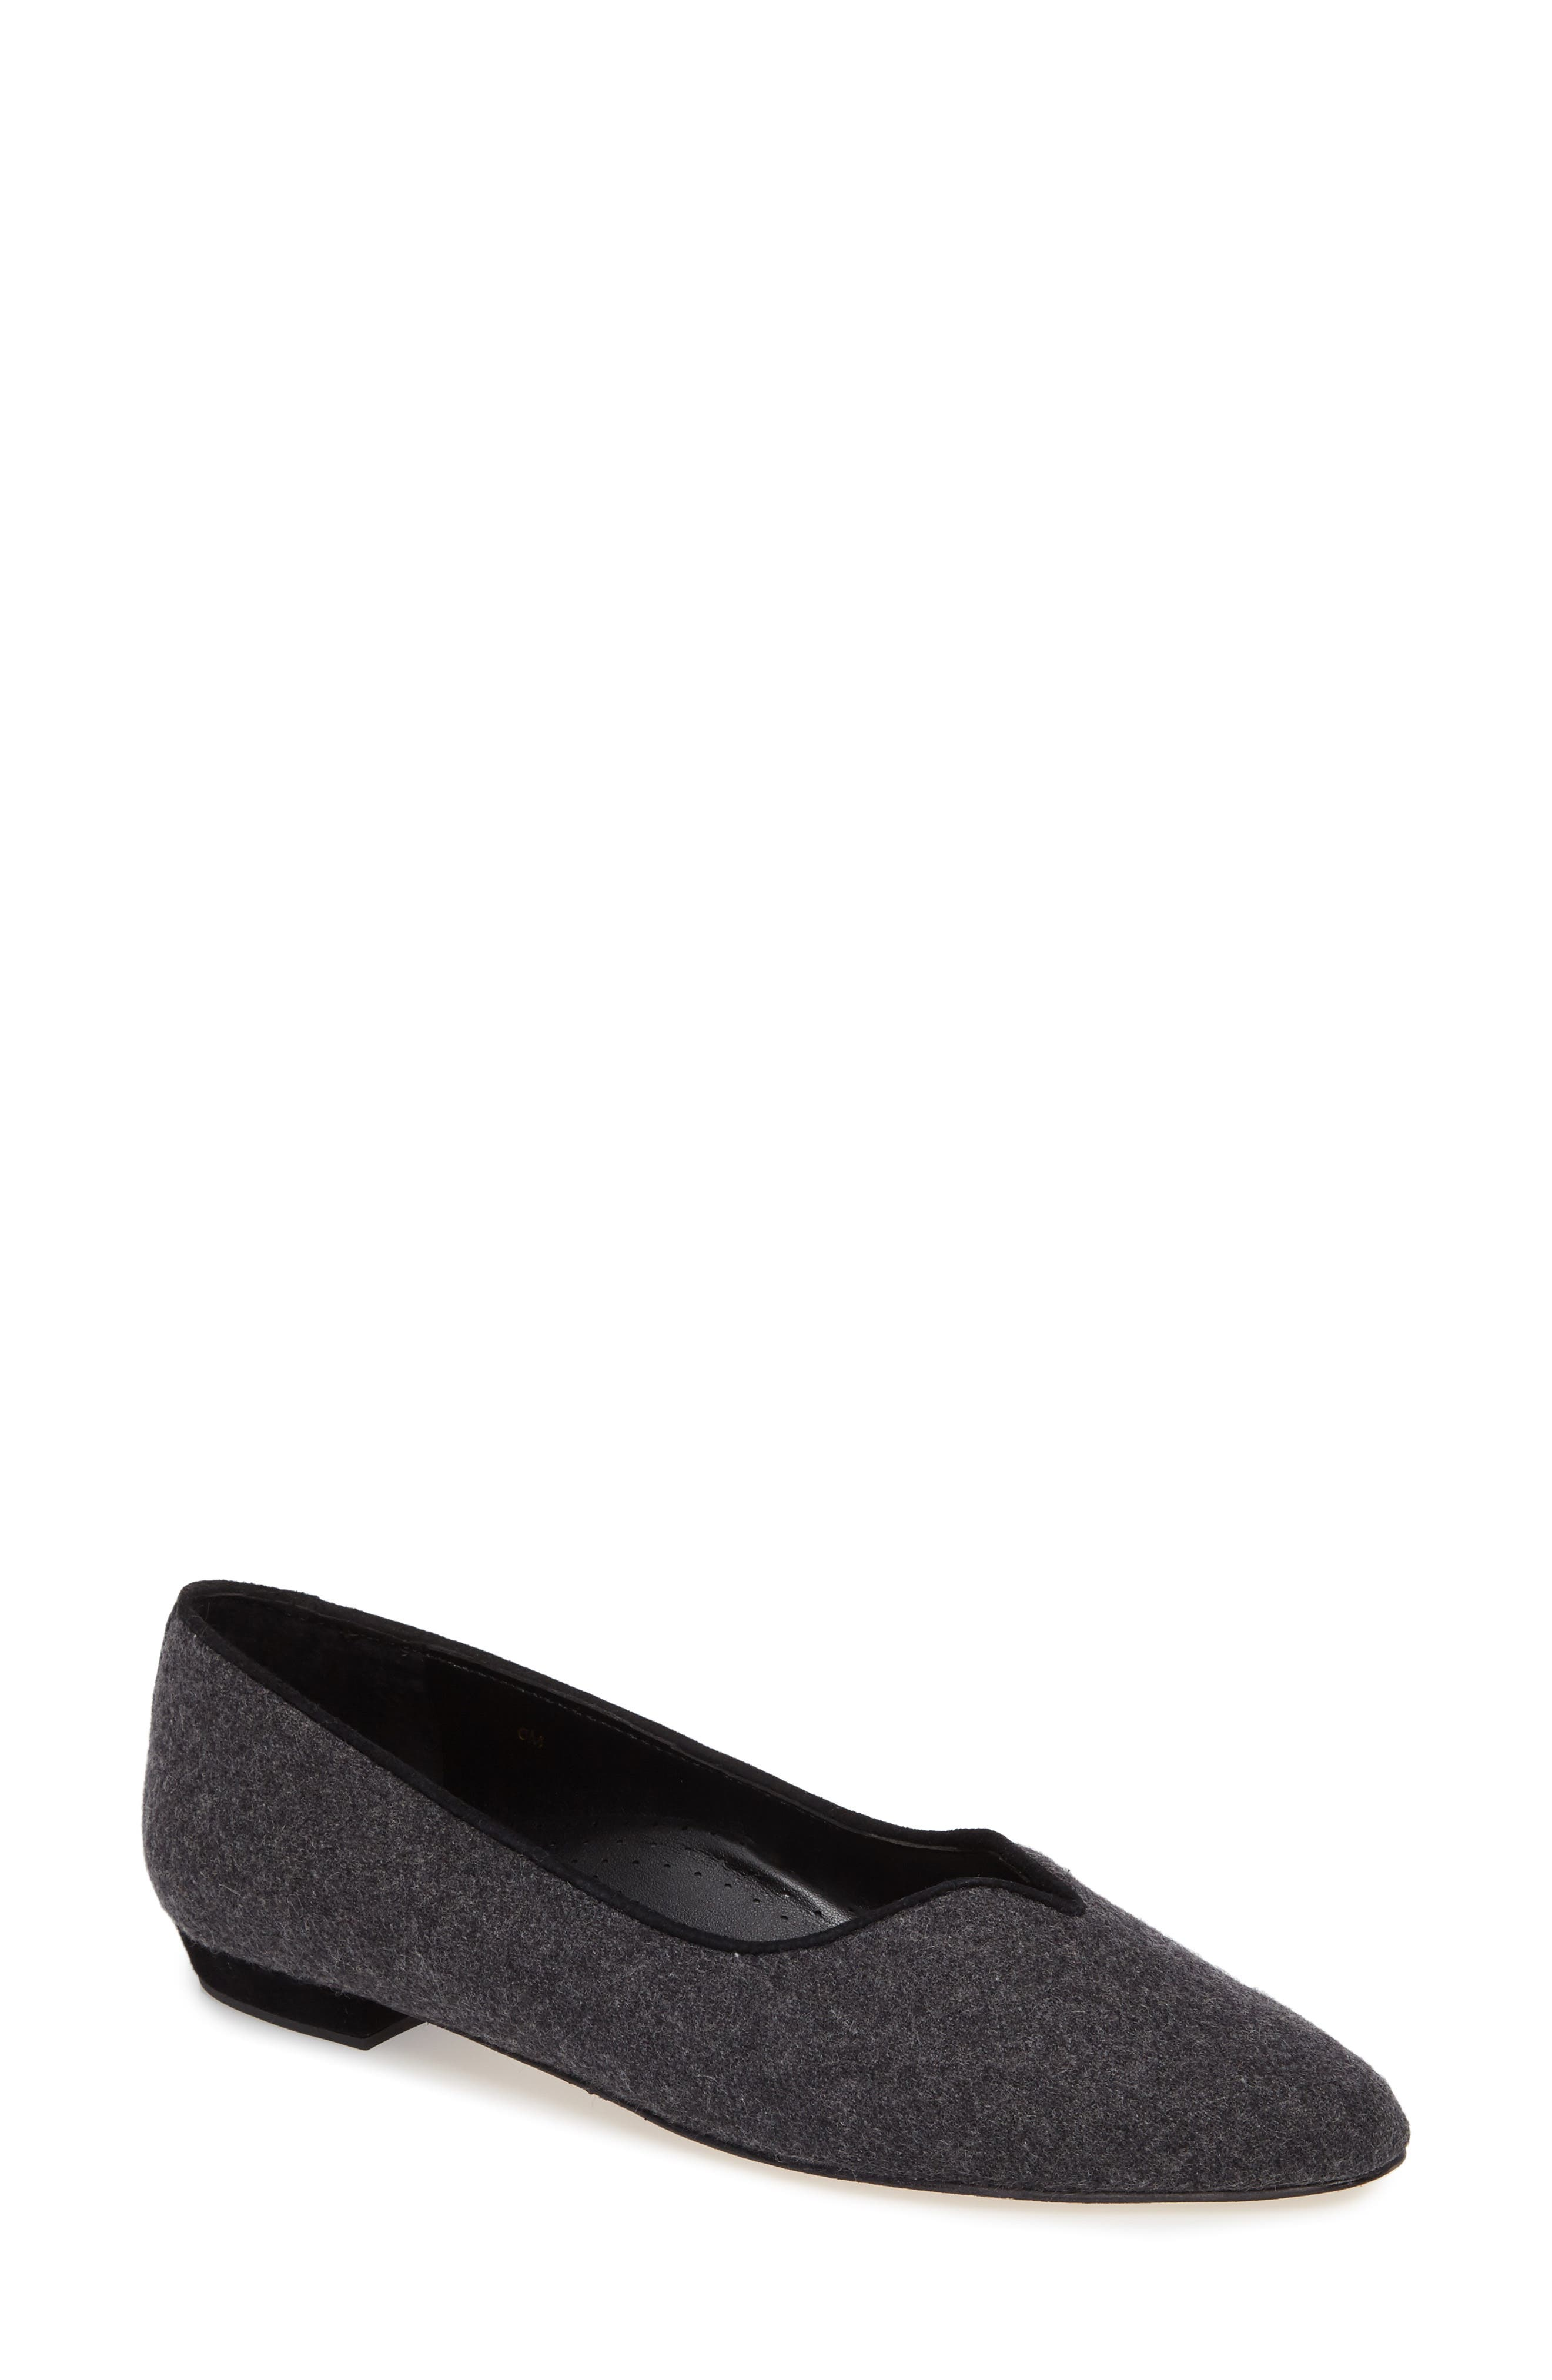 Main Image - VANELi 'Ganet' Pointy Toe Flat (Women)